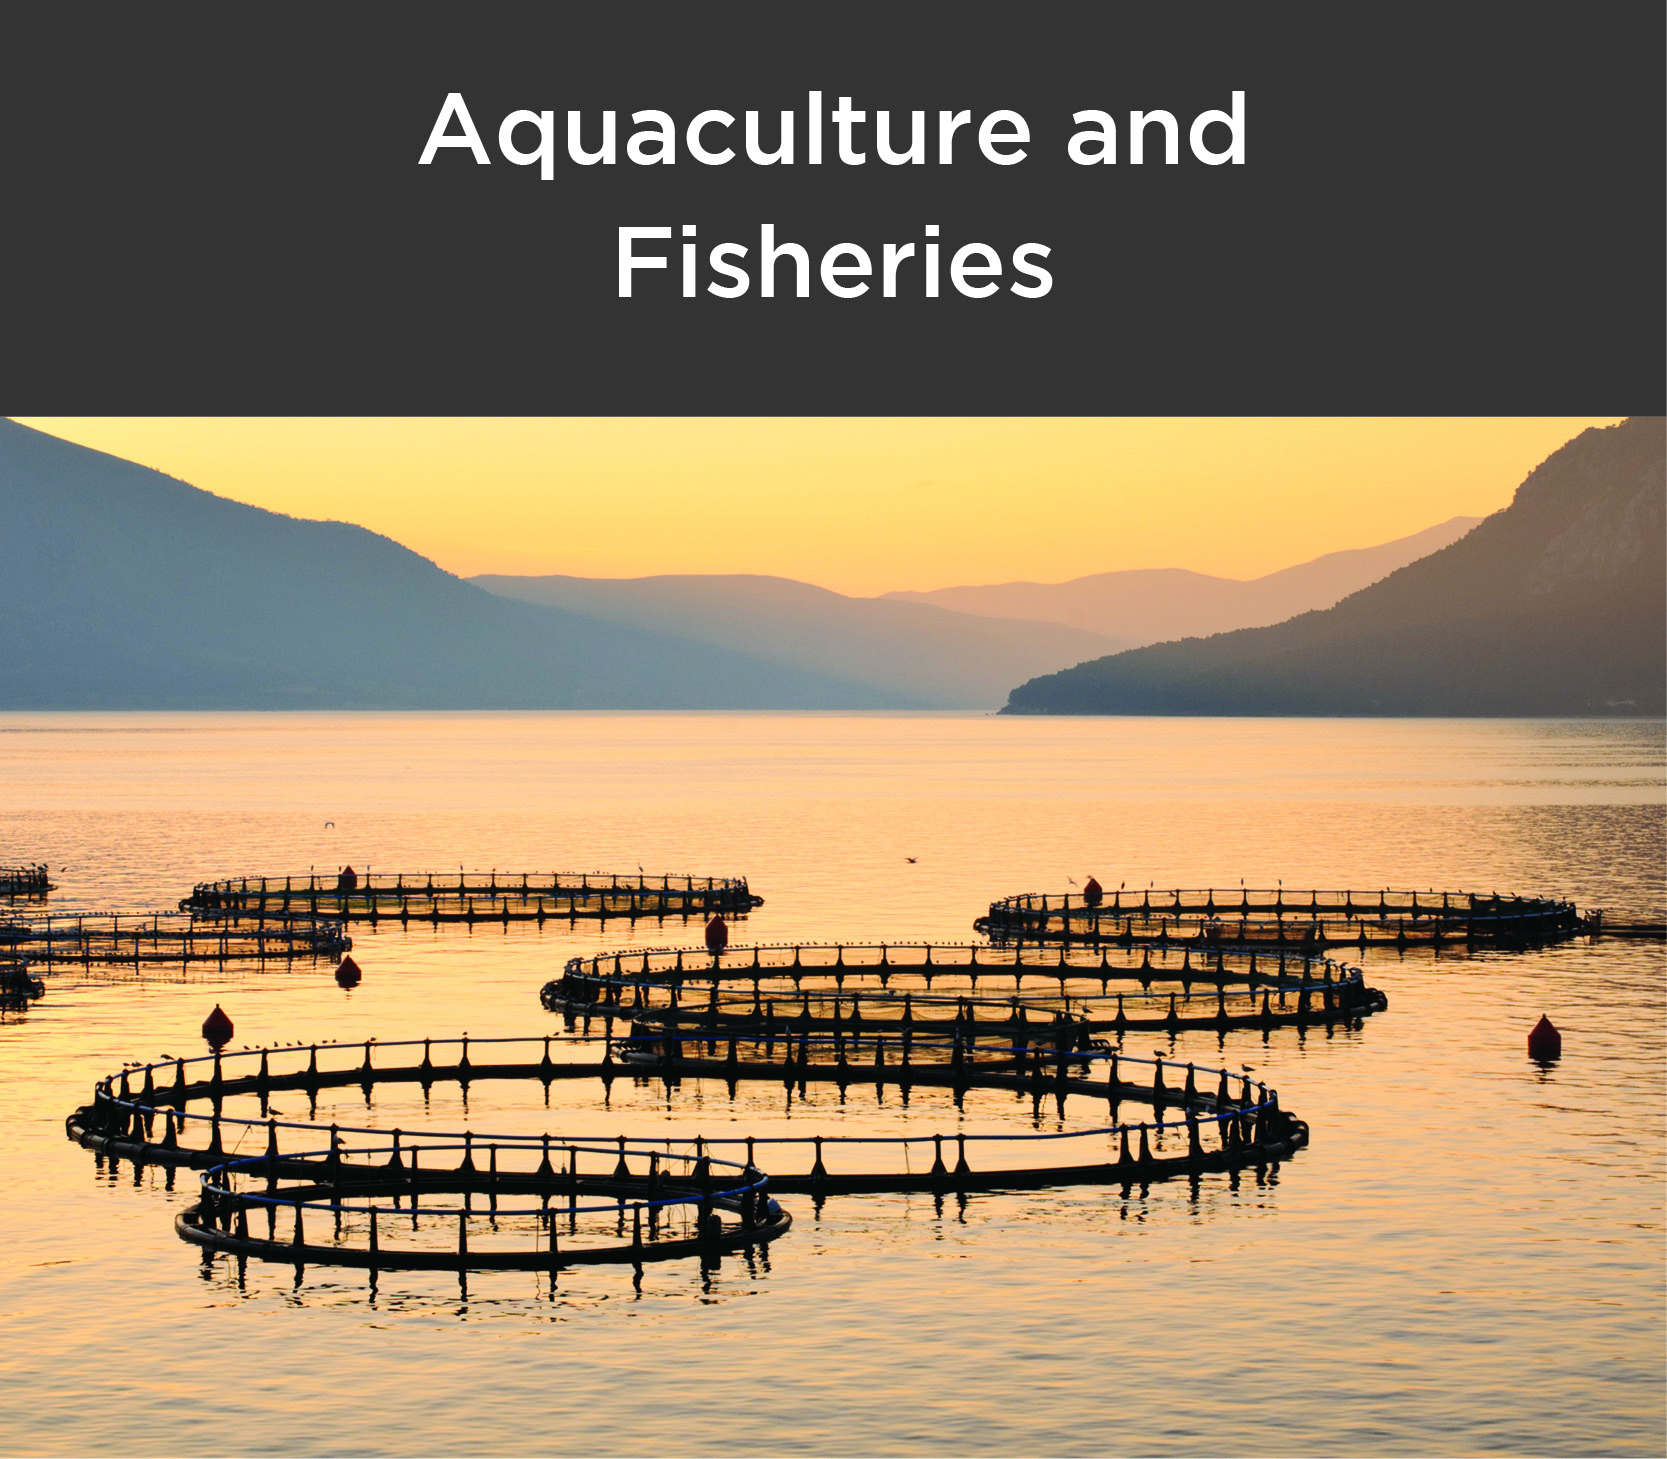 Sector aquaculture and fisheries